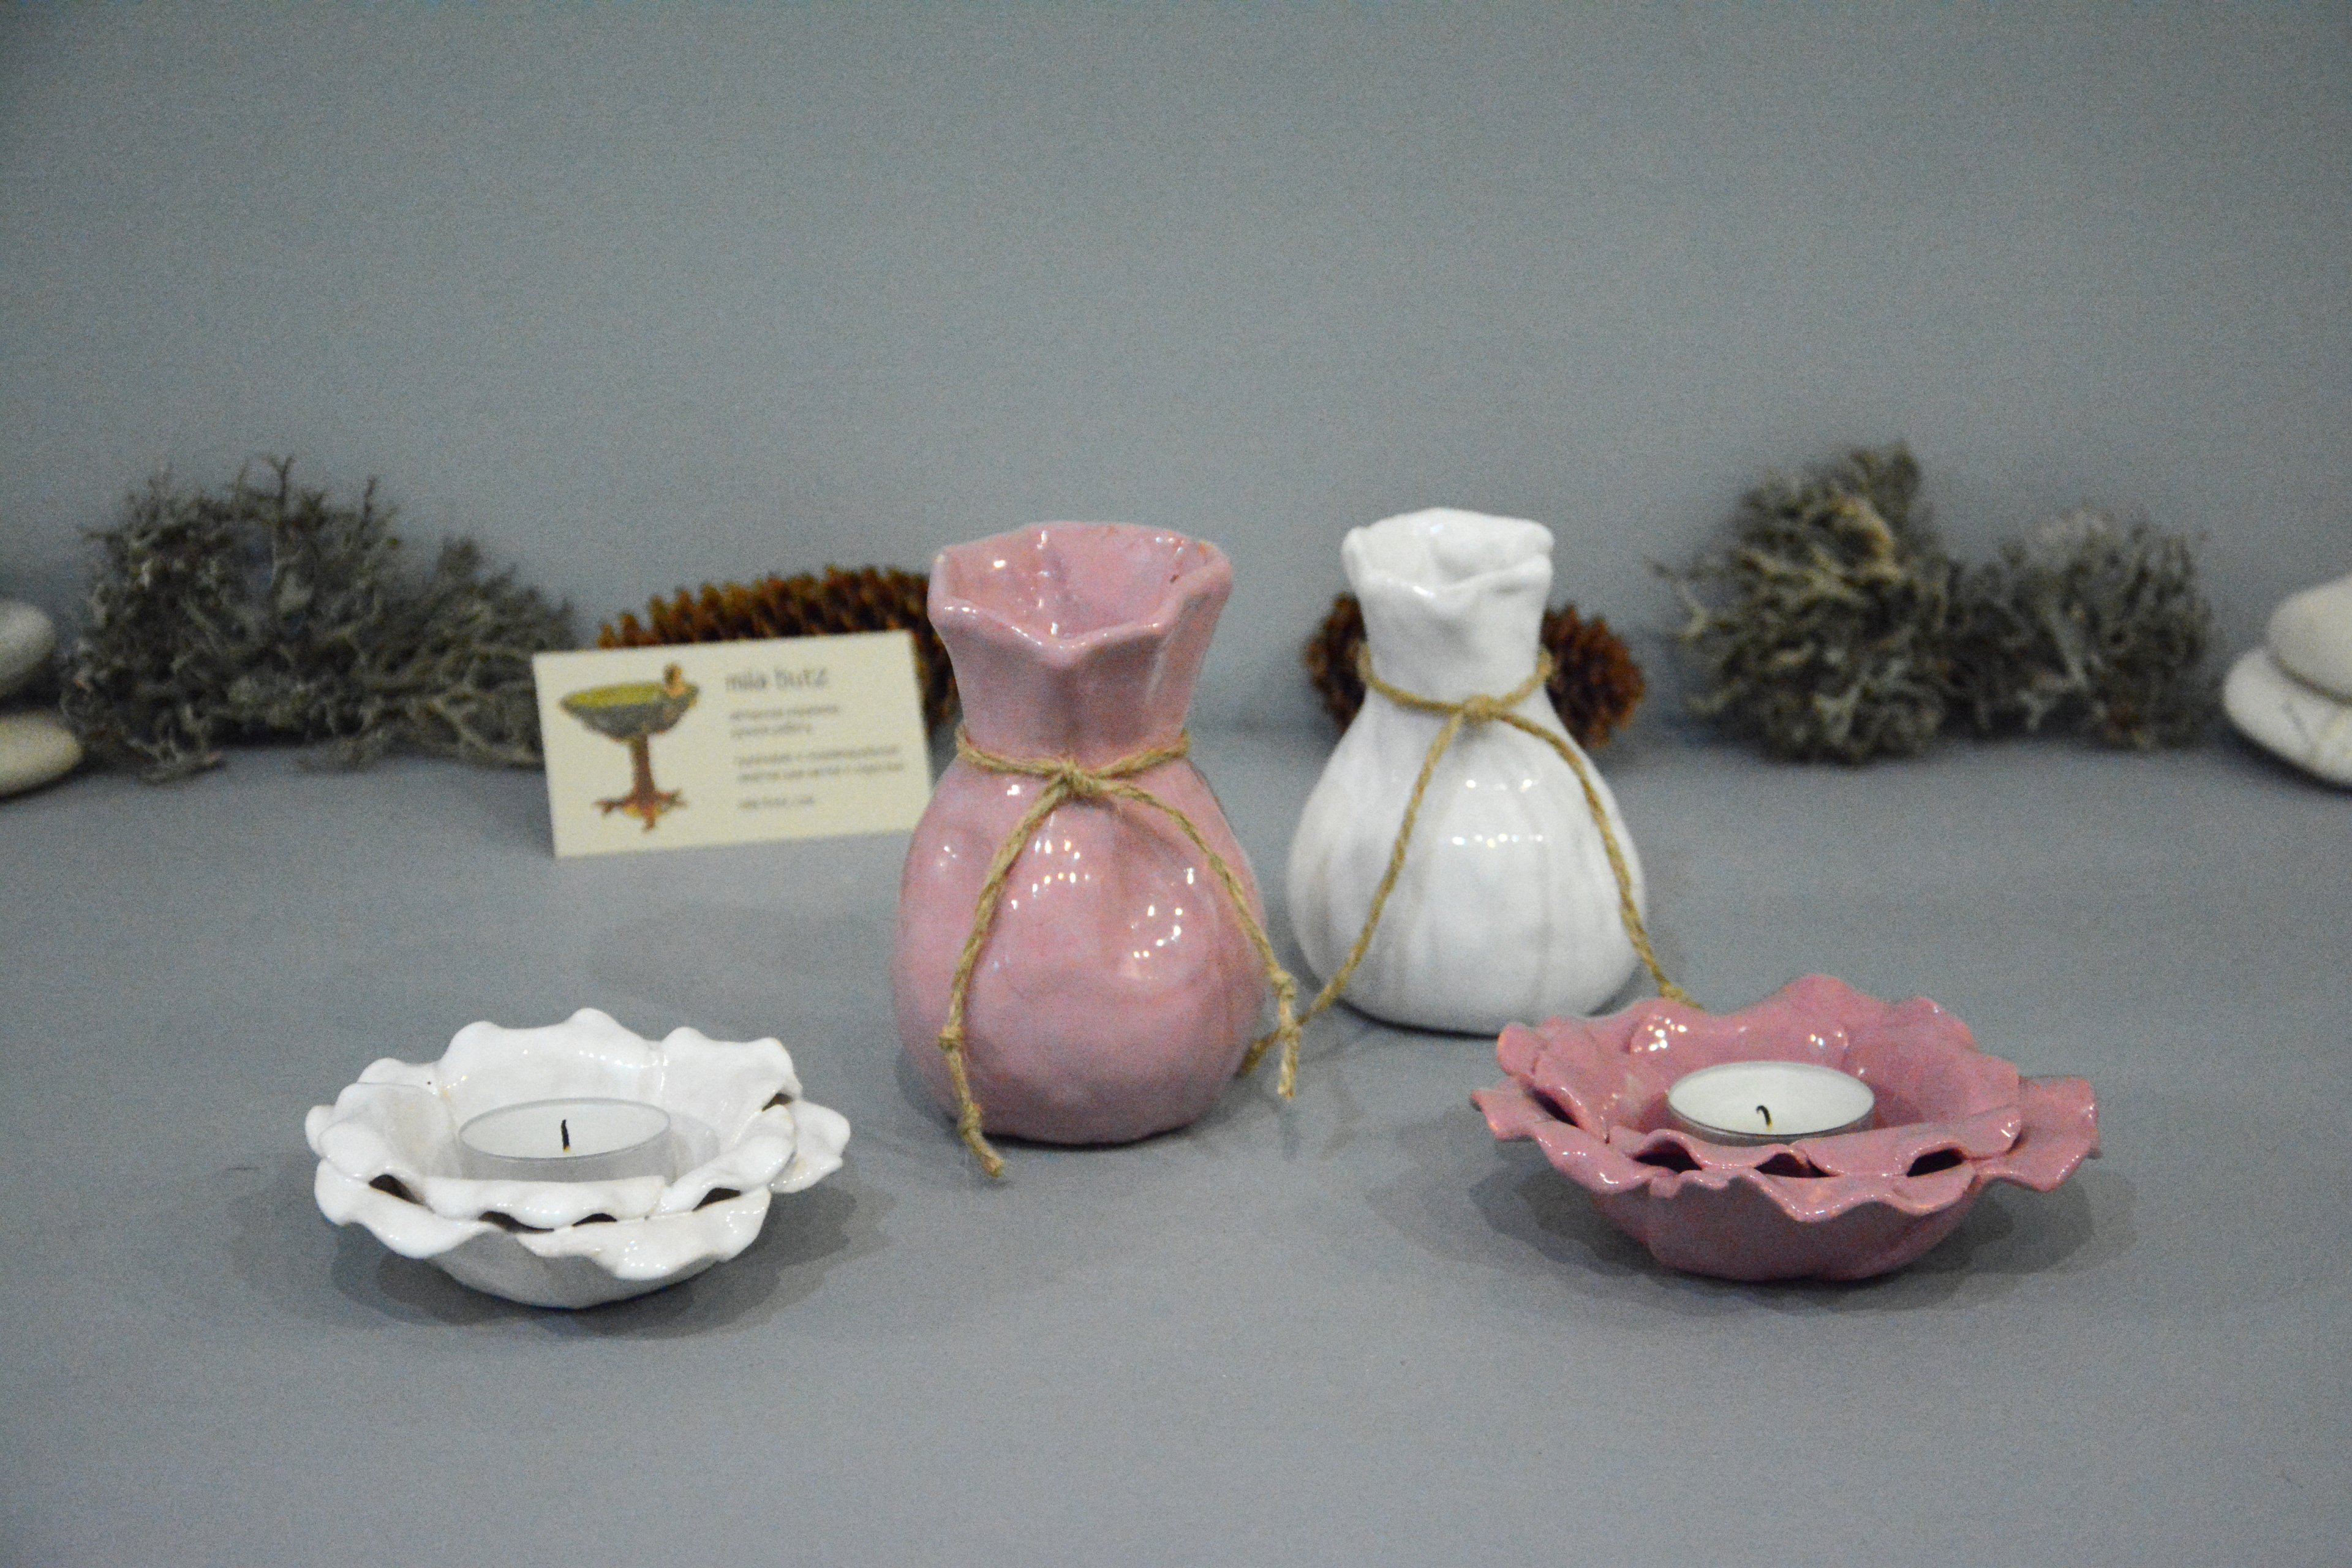 Ceramic small vase candlestick «Pink Bagful», height - 11 cm, photo 6 of 6. 1296.